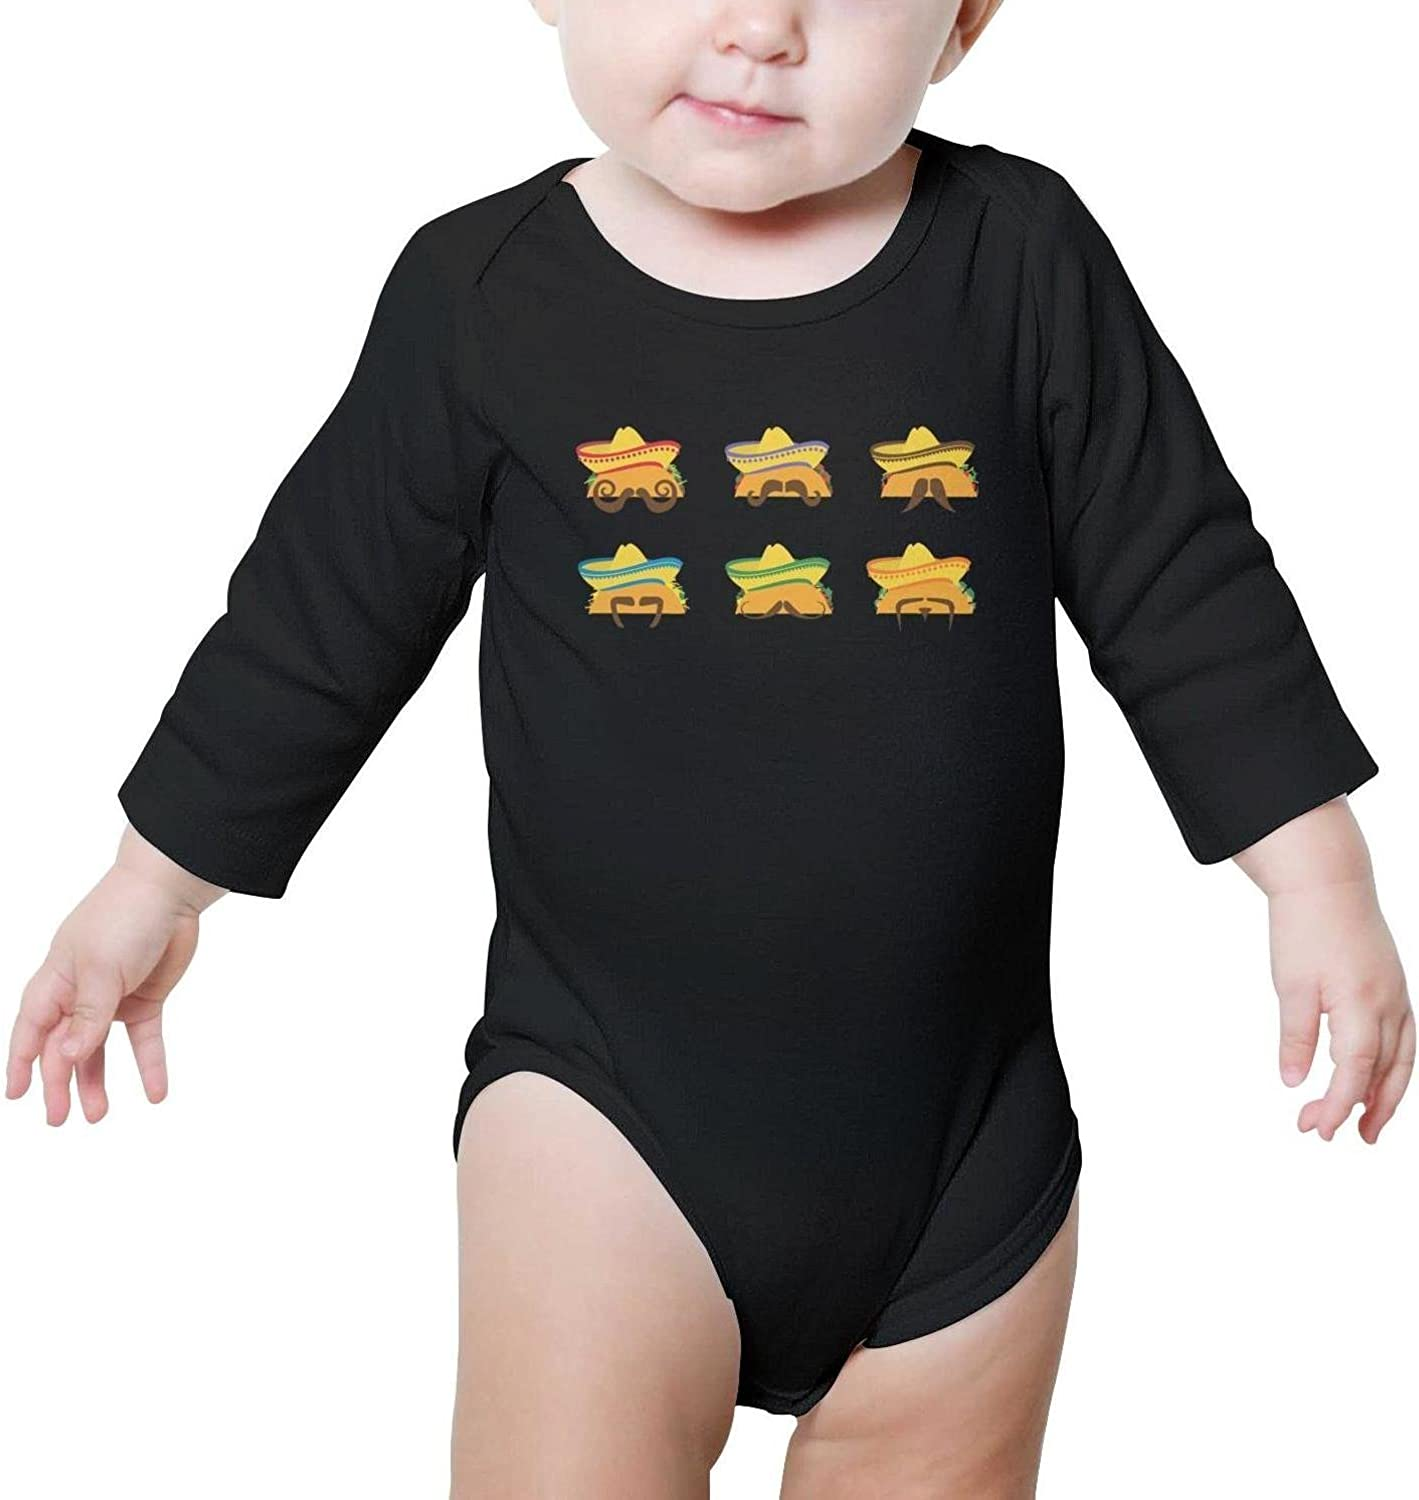 SHUOCDAH Giraffe You Make Me Smile Baby Boys Girls Cool Baby Onesies